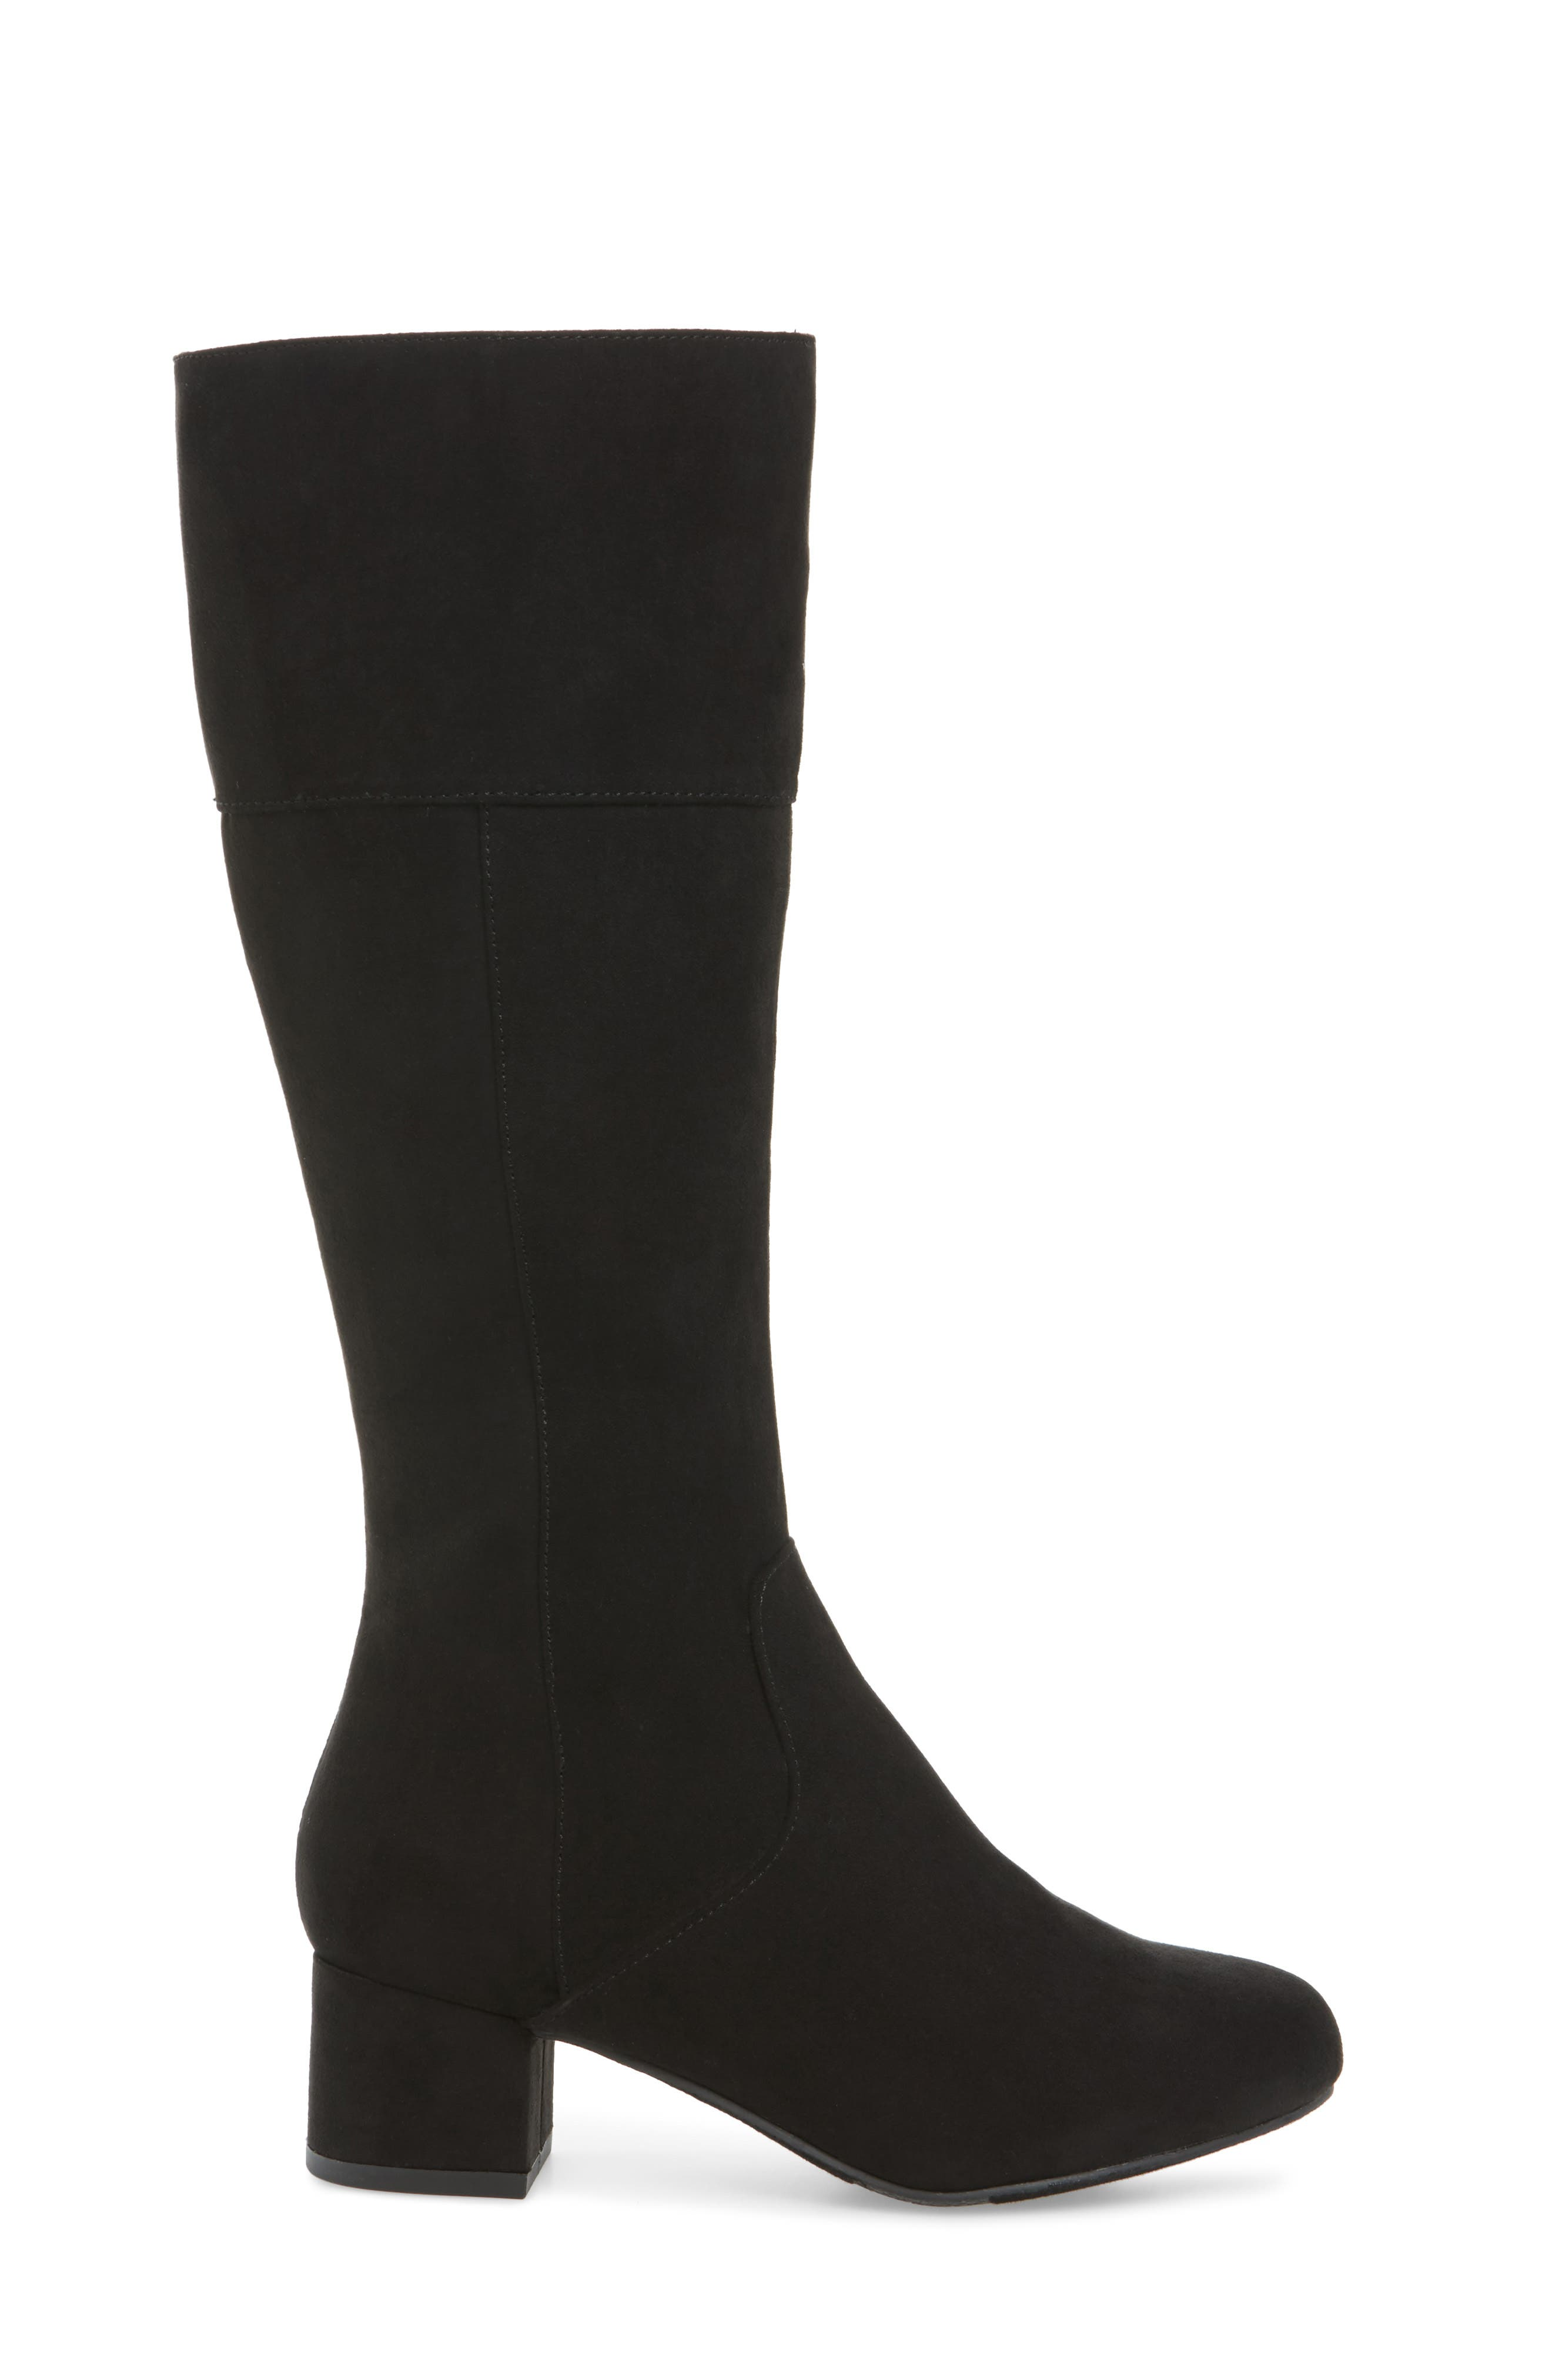 Tate Sydney Tall Boot,                             Alternate thumbnail 3, color,                             001